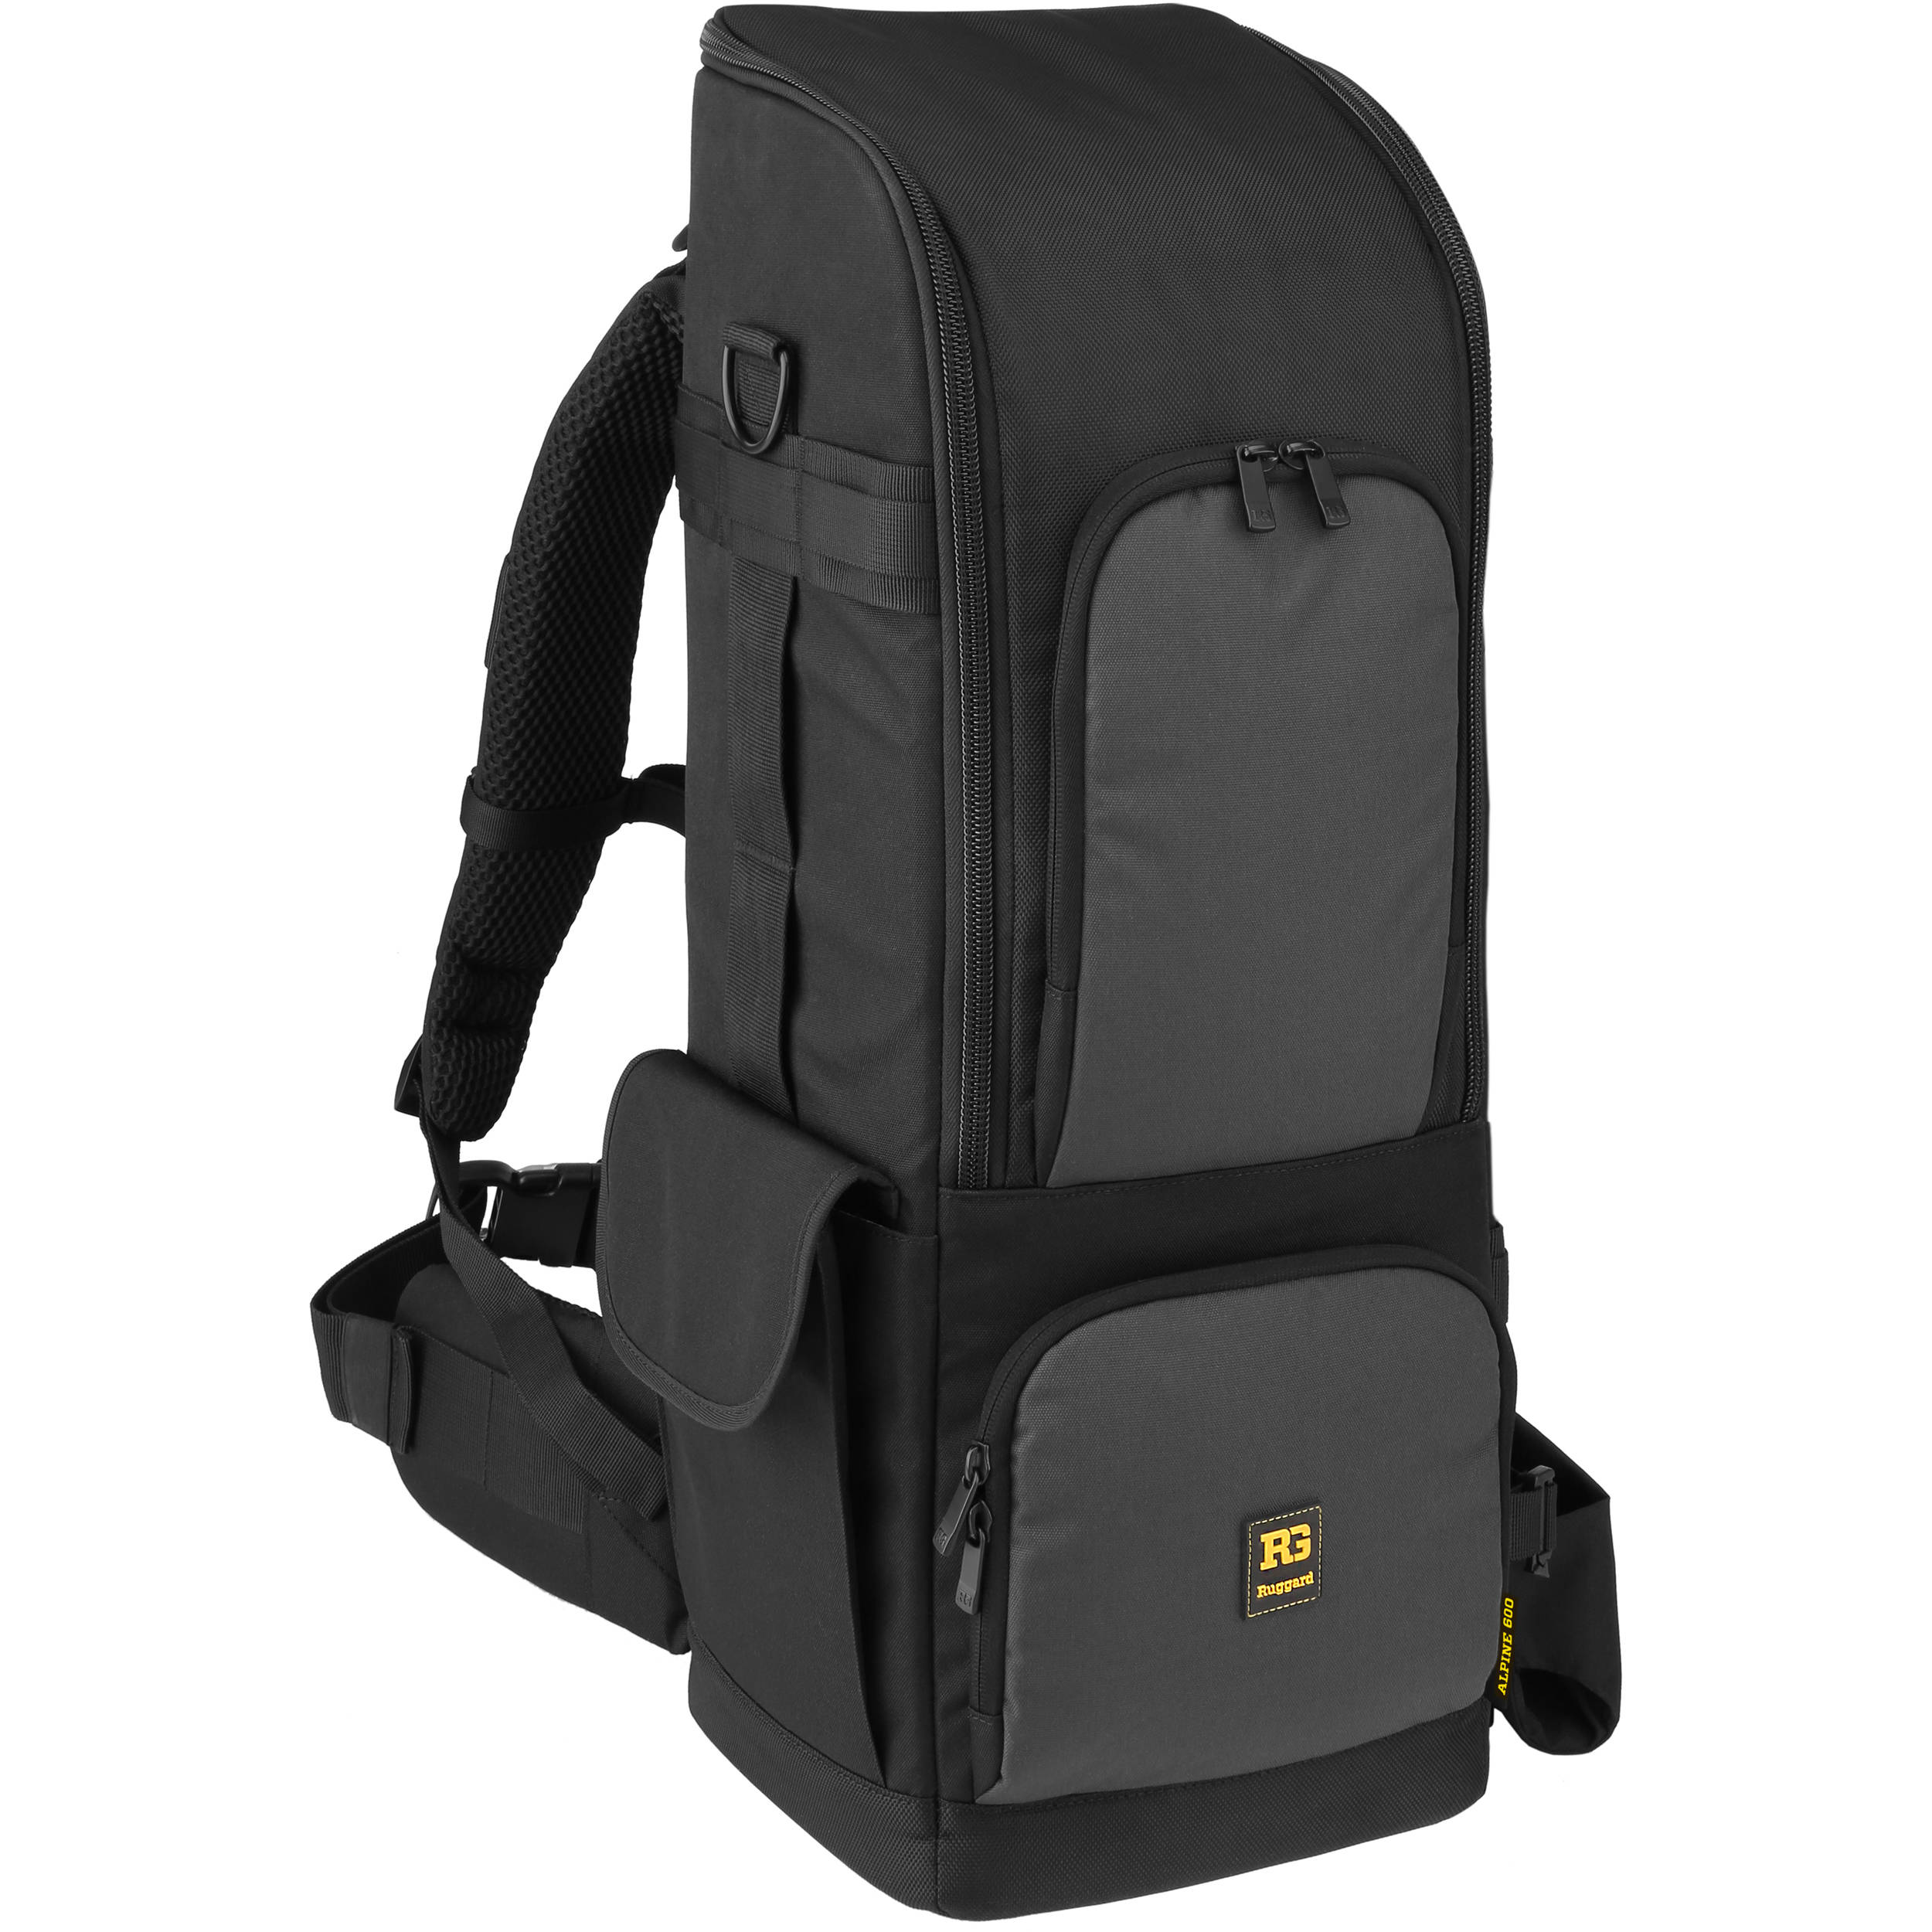 2ef3dbe49b17 Ruggard Alpine 600 Lens Backpack for DSLR and 600 800mm Lens (Black)